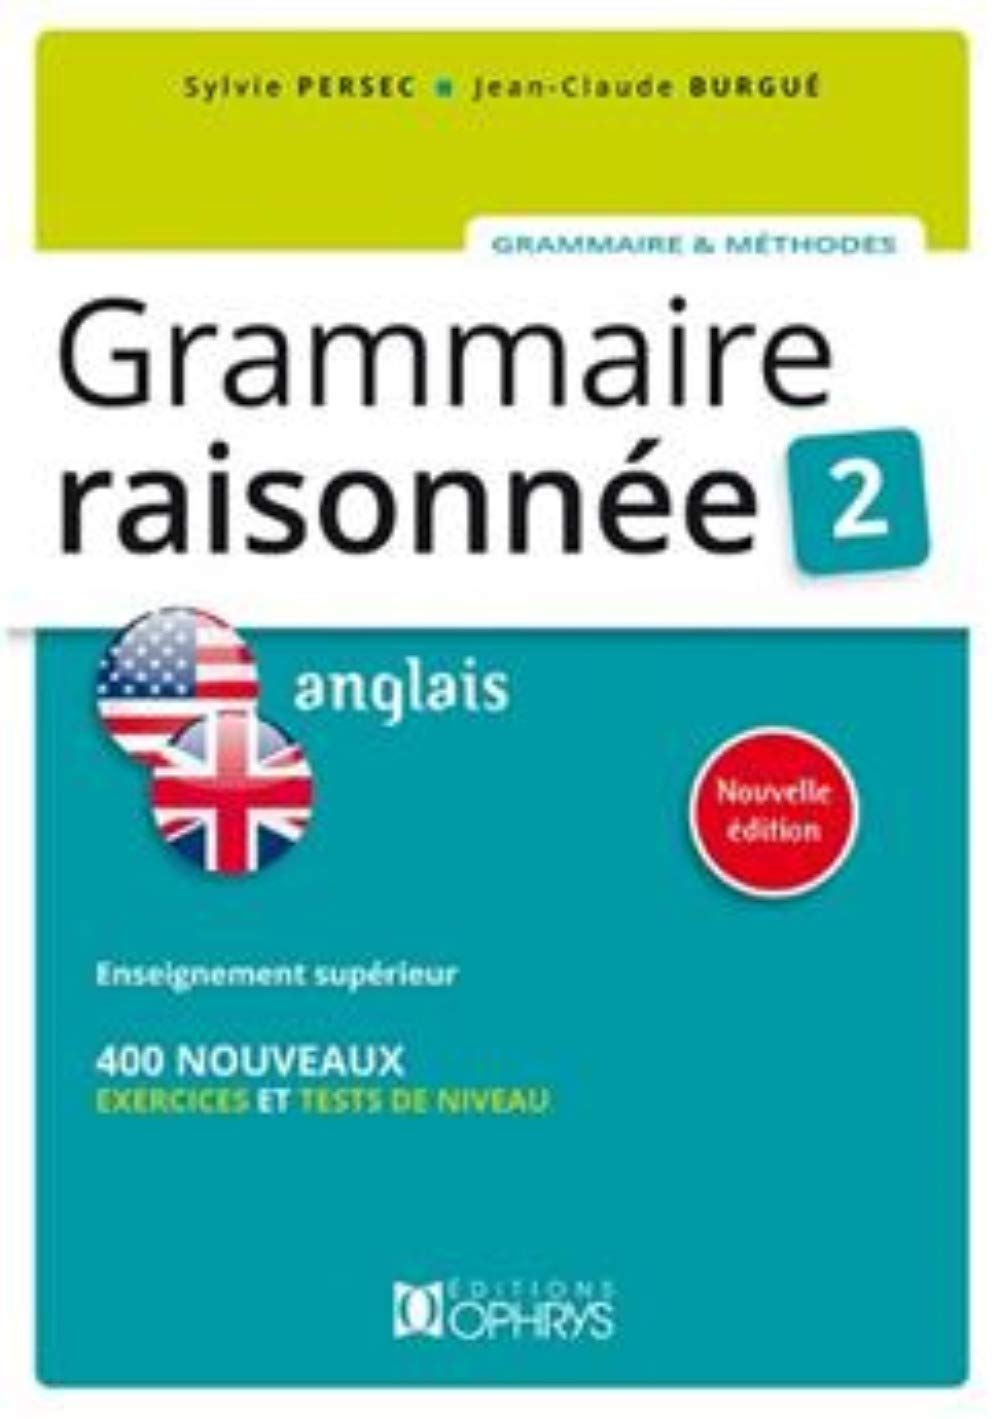 Amazon In Buy Grammaire Raisonnee 2 Anglais Book Online At Low Prices In India Grammaire Raisonnee 2 Anglais Reviews Ratings